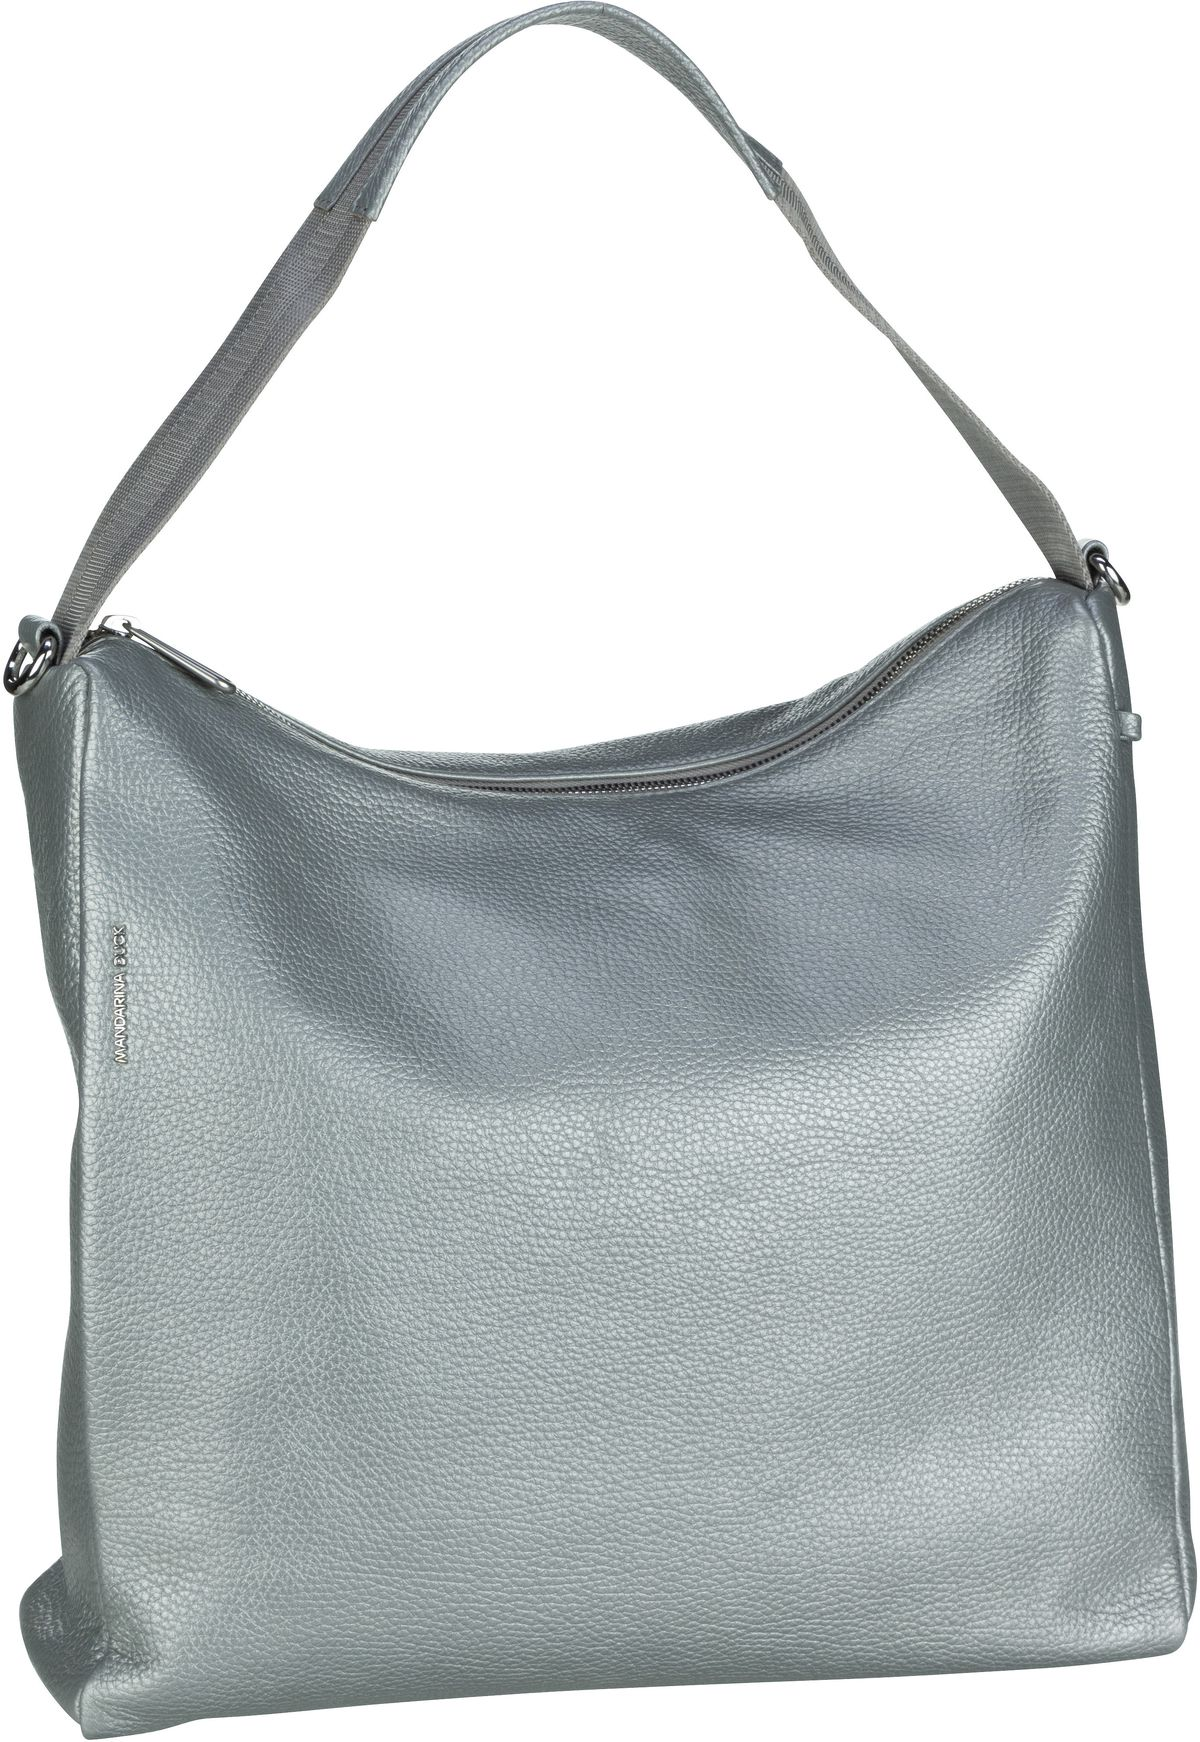 Handtasche Mellow Leather Lux Hobo ZLT95 Silver